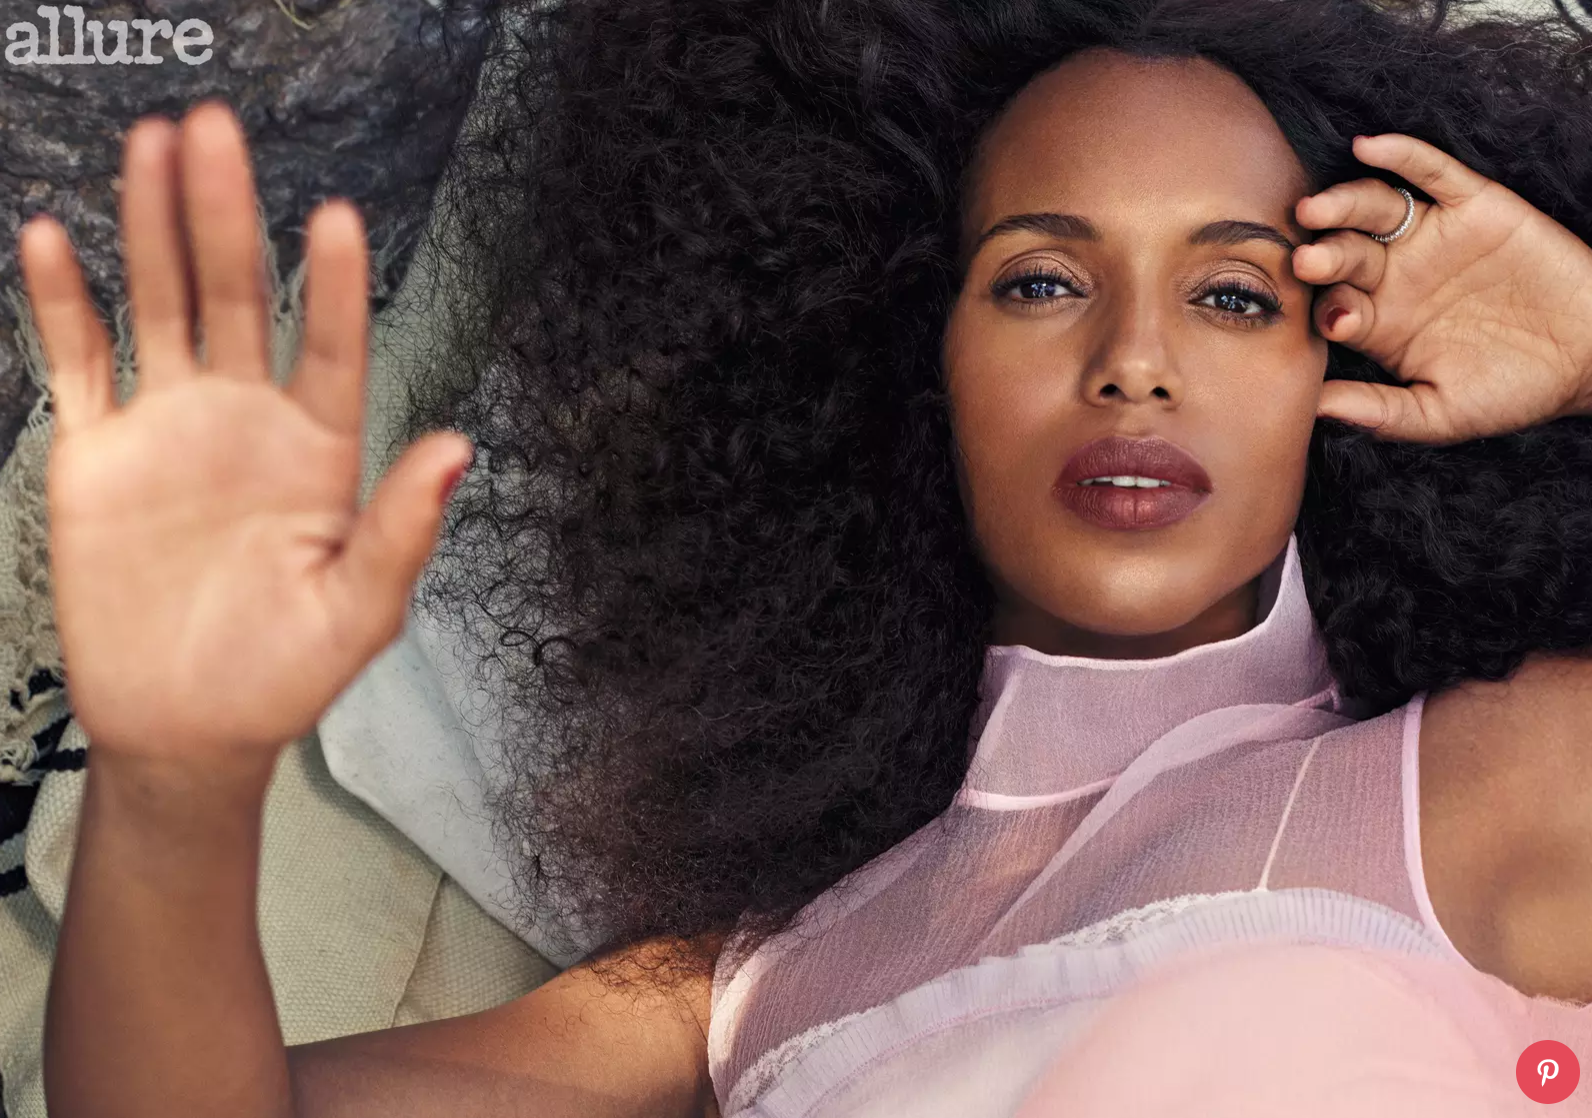 Kerry Washington Wears Her Hair Natural Now That's She's A Mom – Here's Why